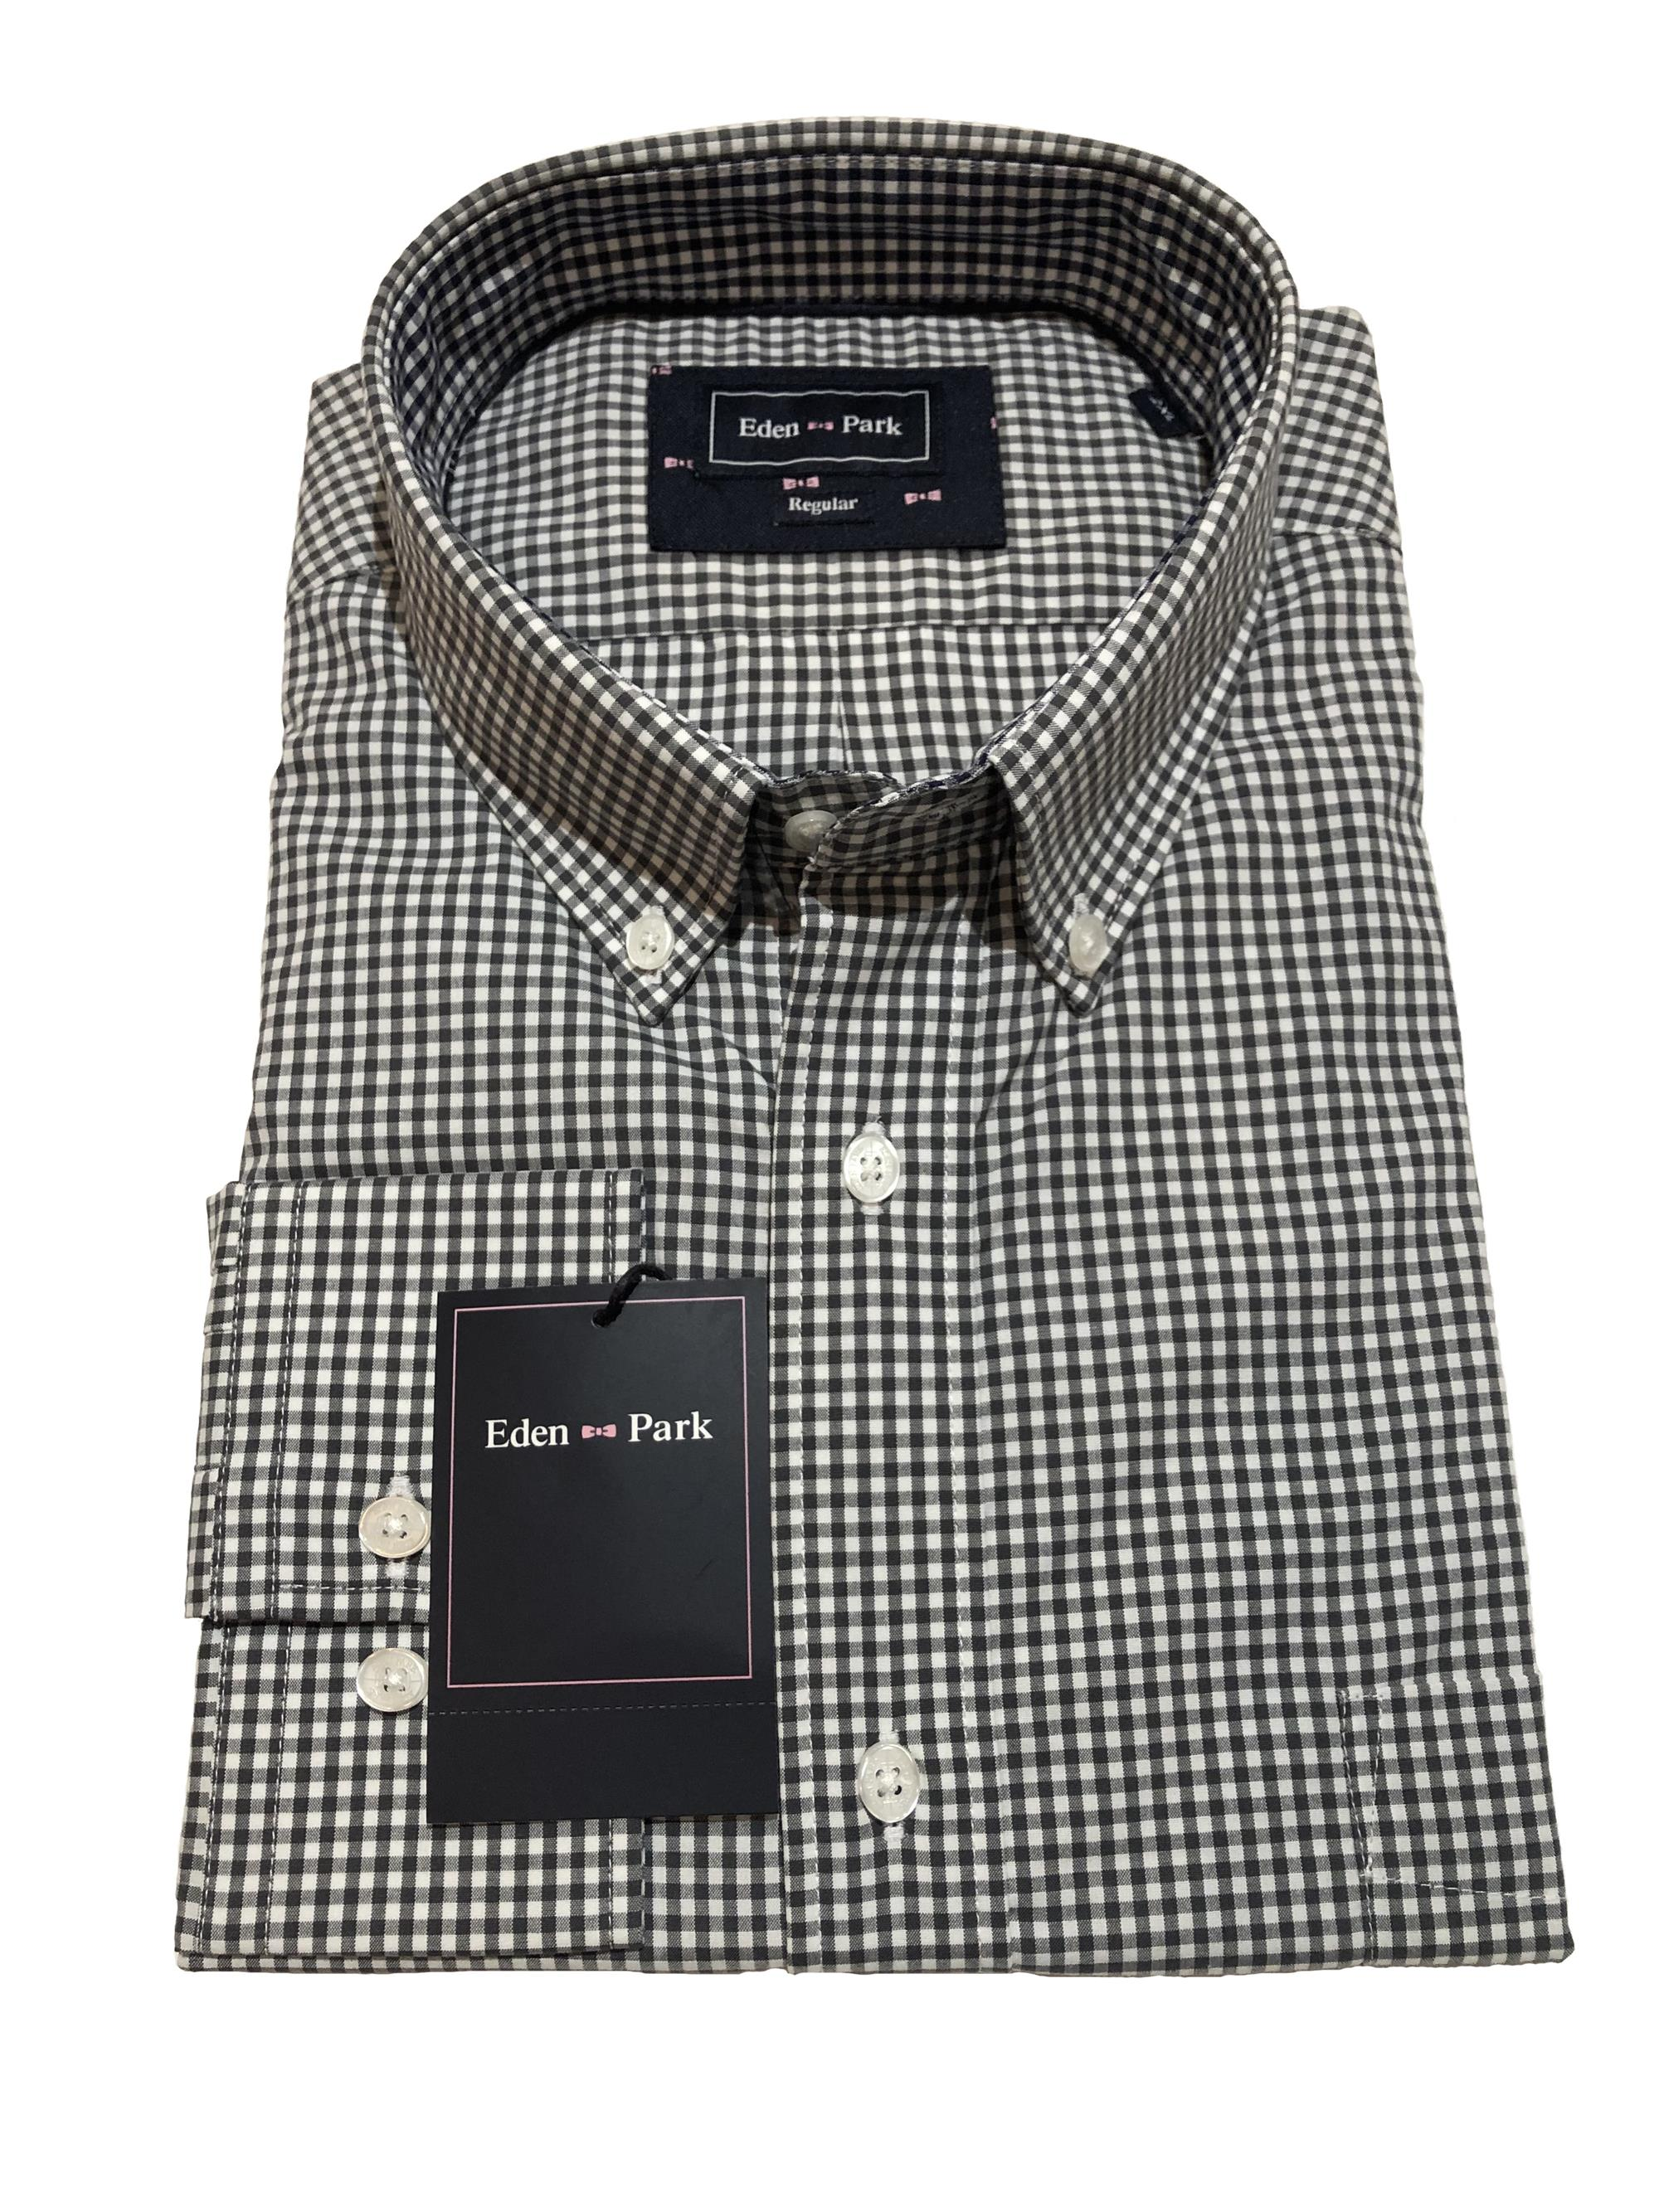 classic long sleeve gingham check shirt (charcoal)